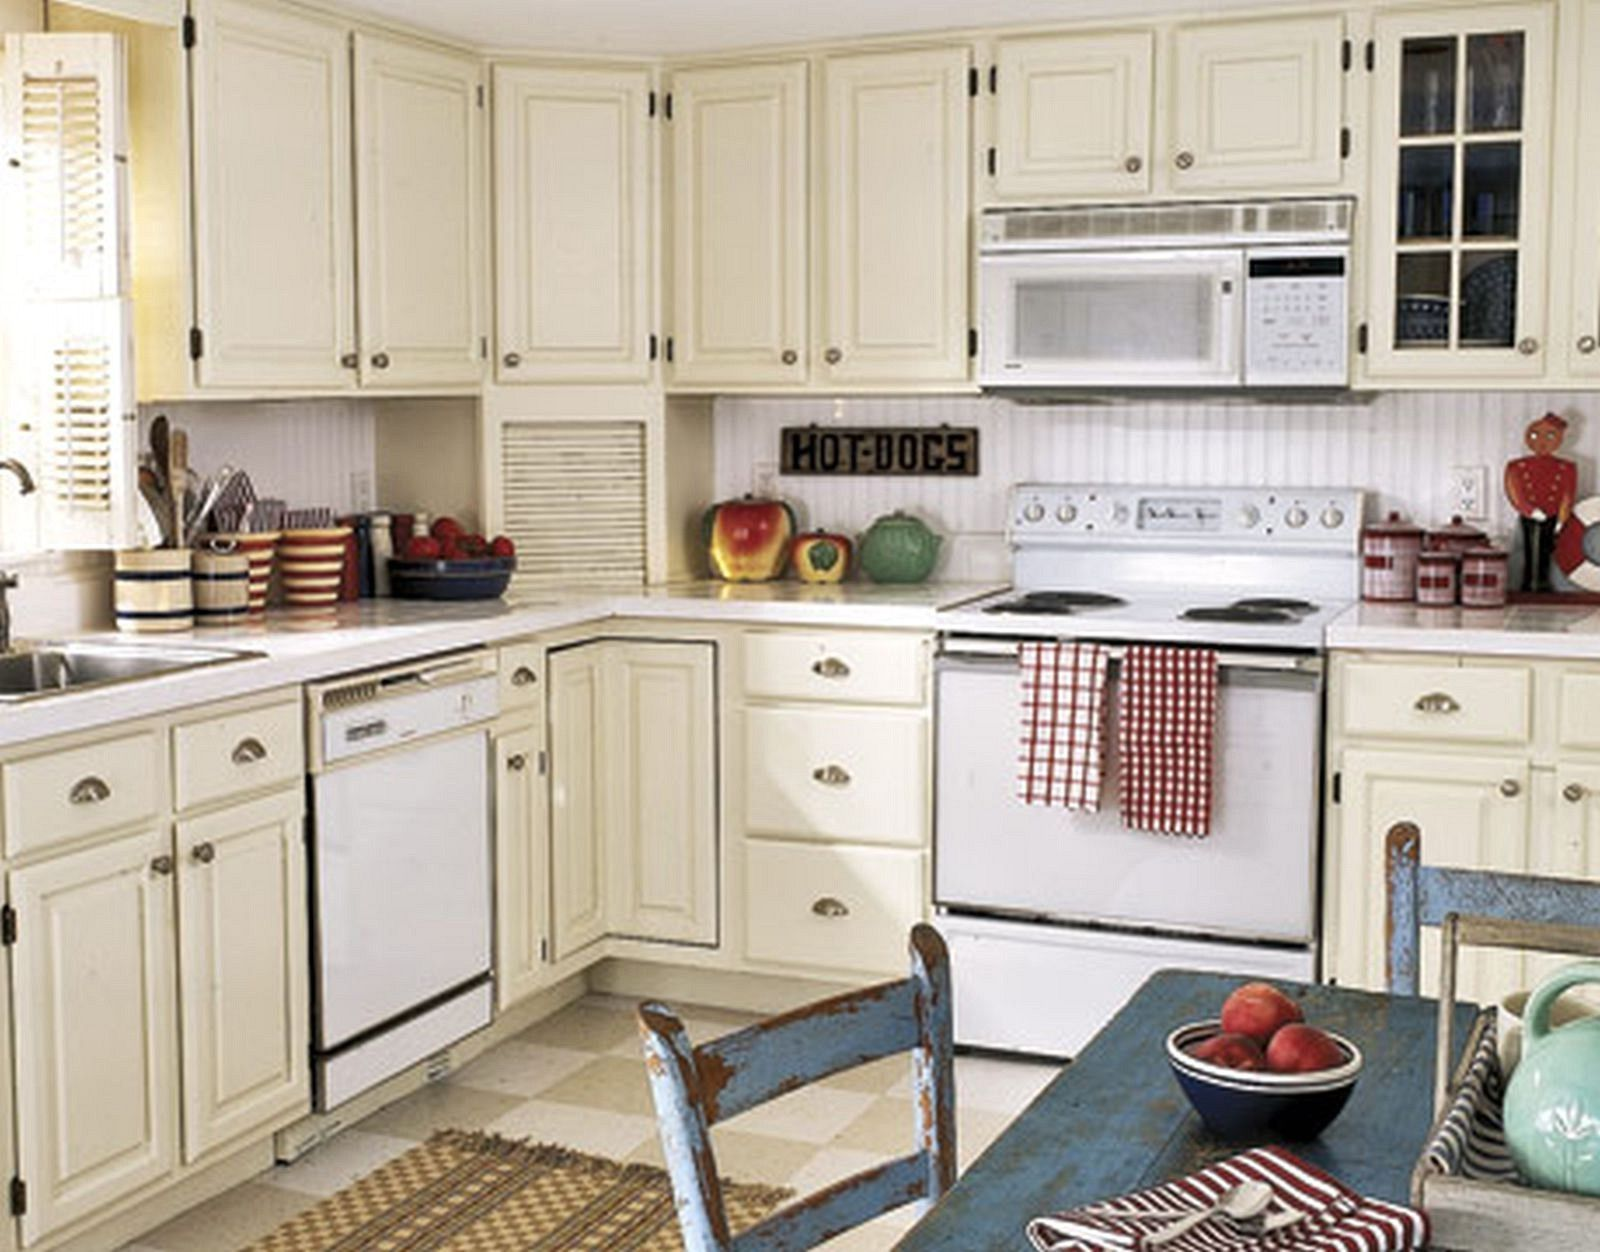 Kitchen Appliances:Upscale Kitchen Appliances High End Appliance Brands  Refrigerator Best Small Cheap Online Top